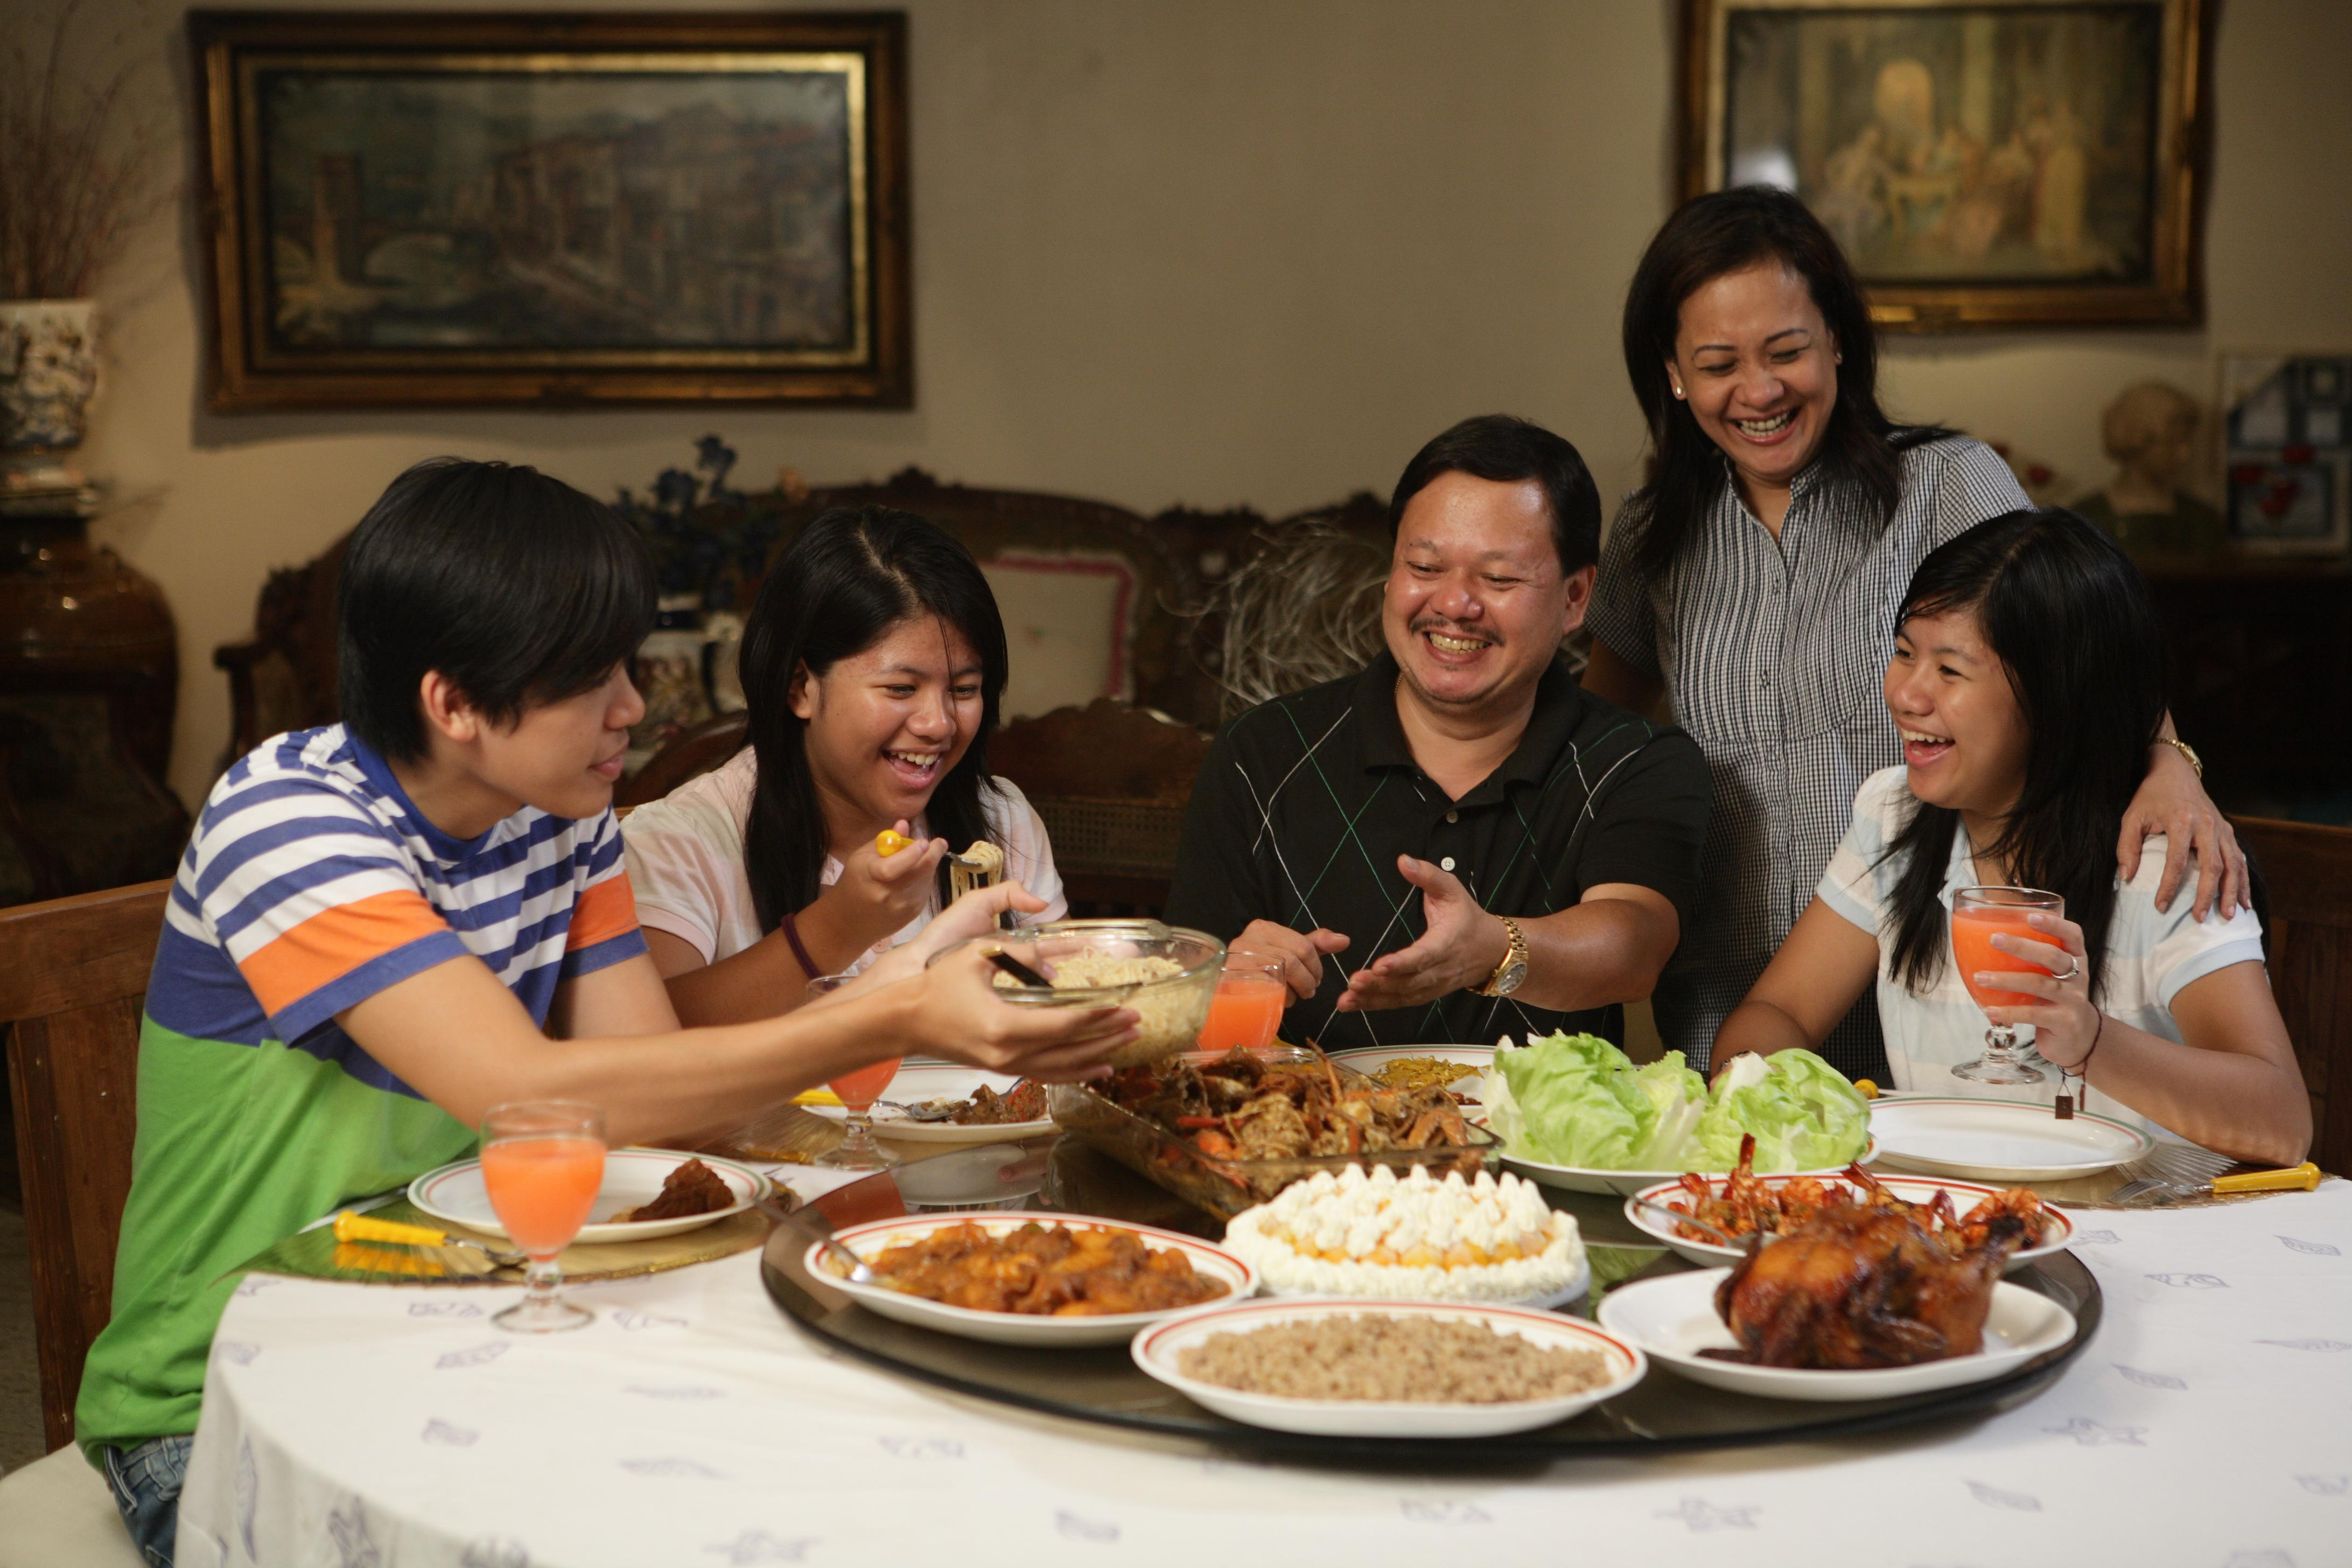 Meal clipart. Filipino family about cagayan